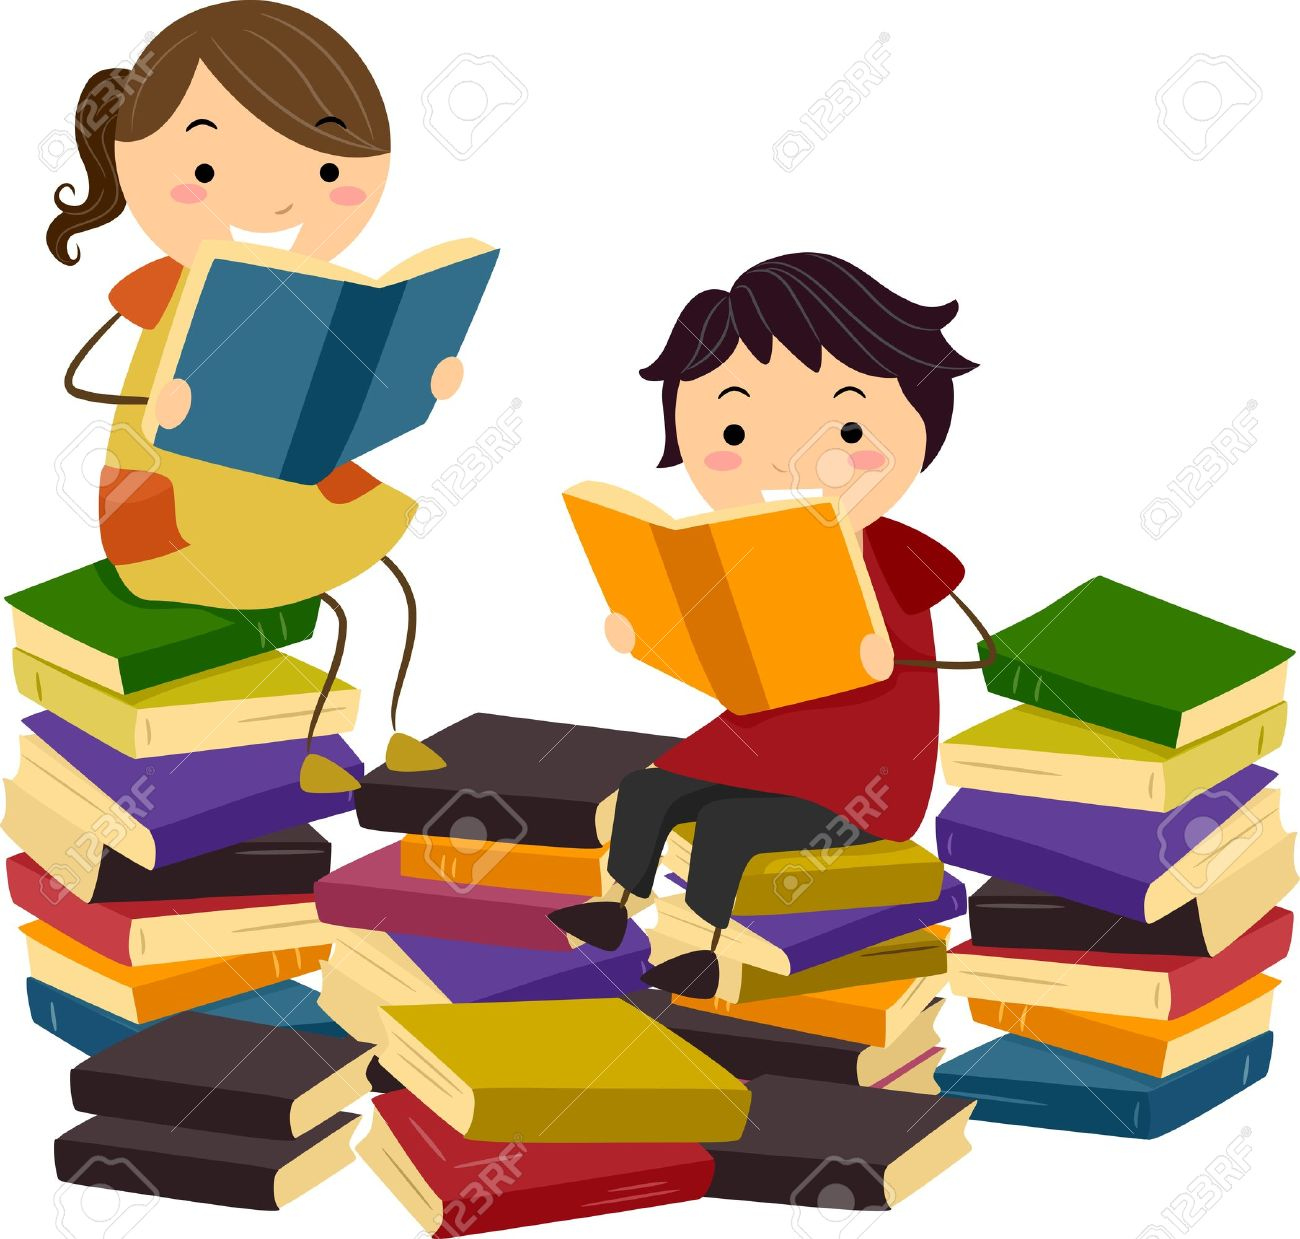 clipart kids reading together #2